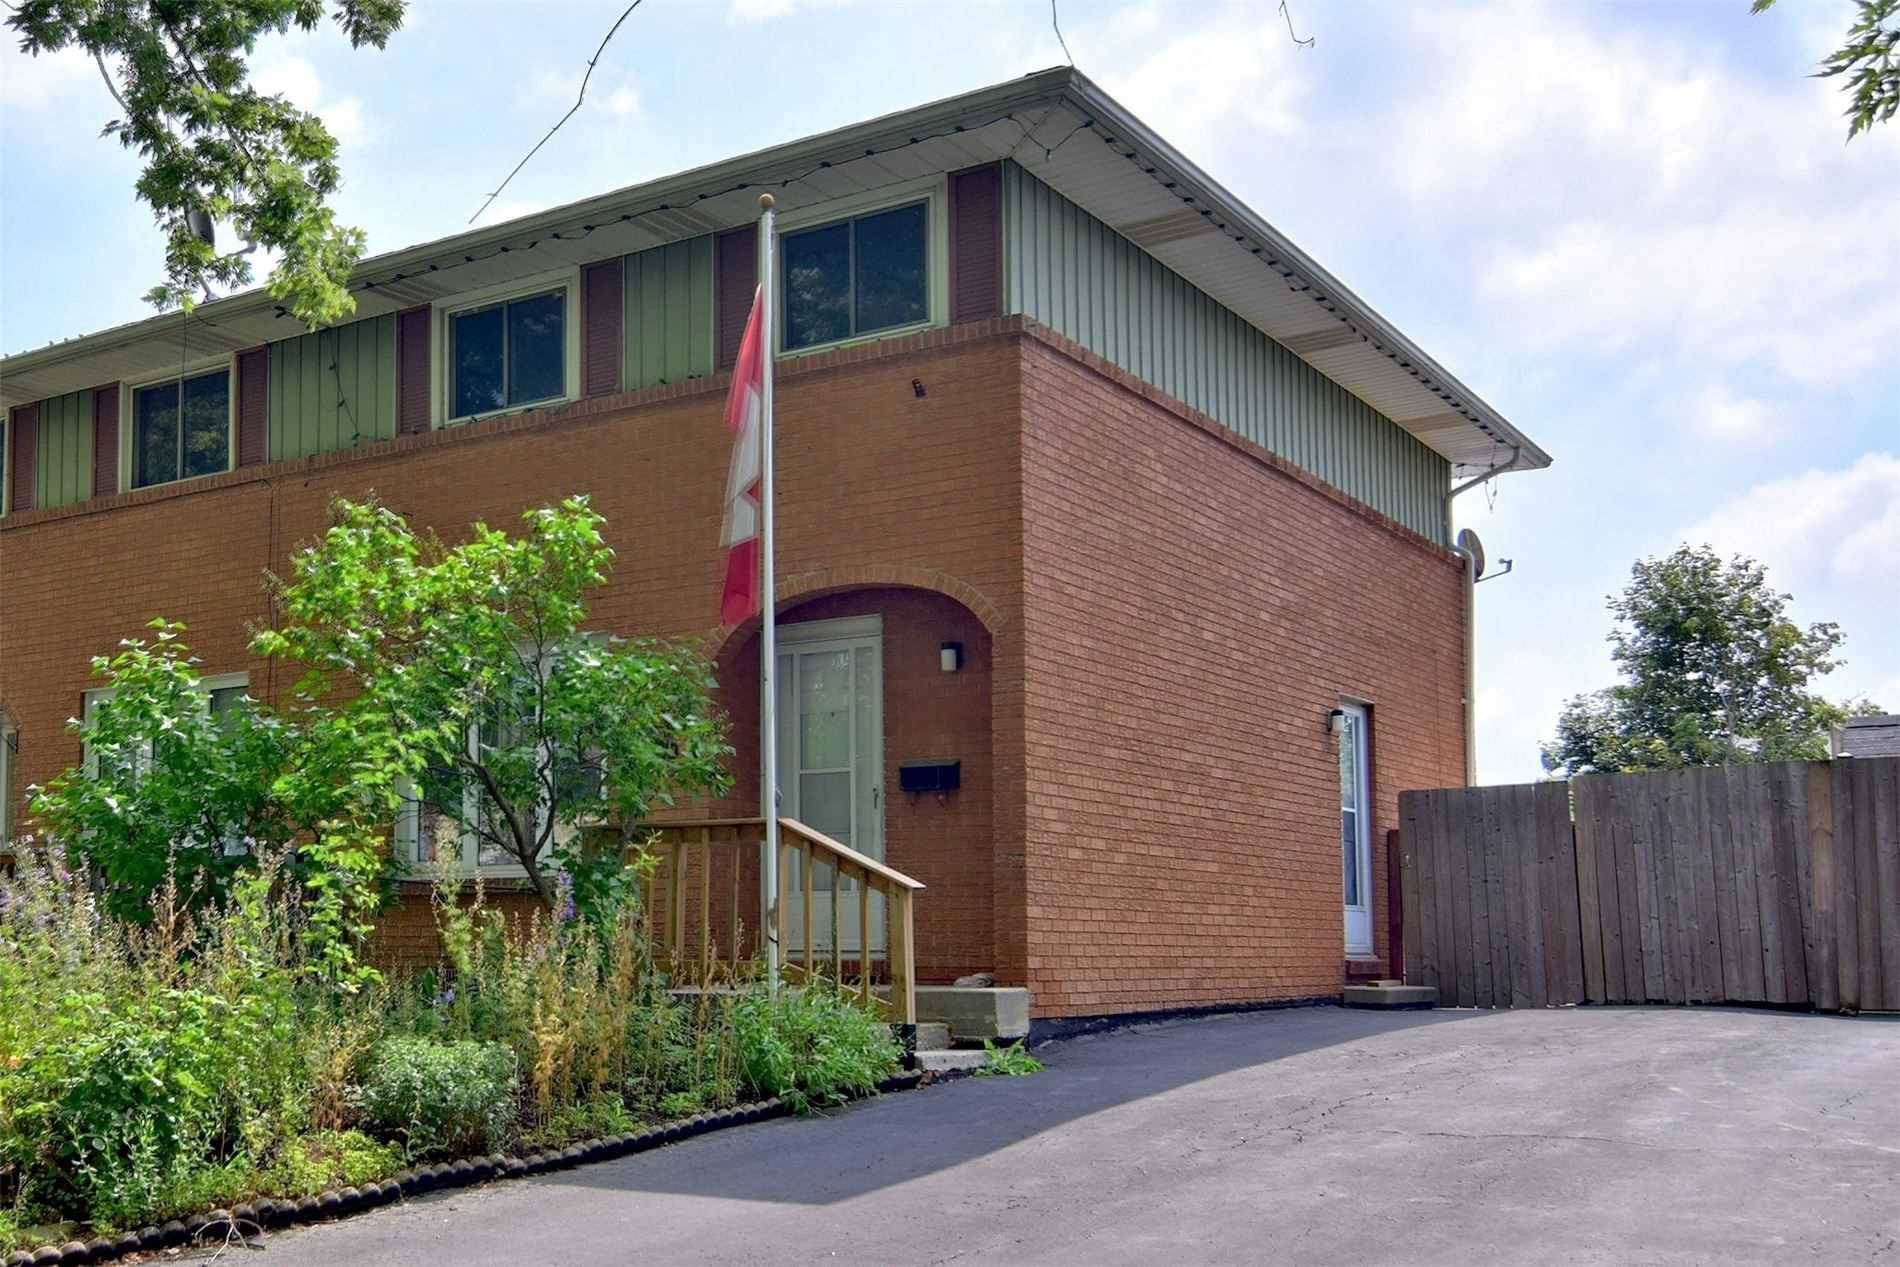 Townhouse for sale at 9369 Ryerson Rd Windsor Ontario - MLS: X4517256